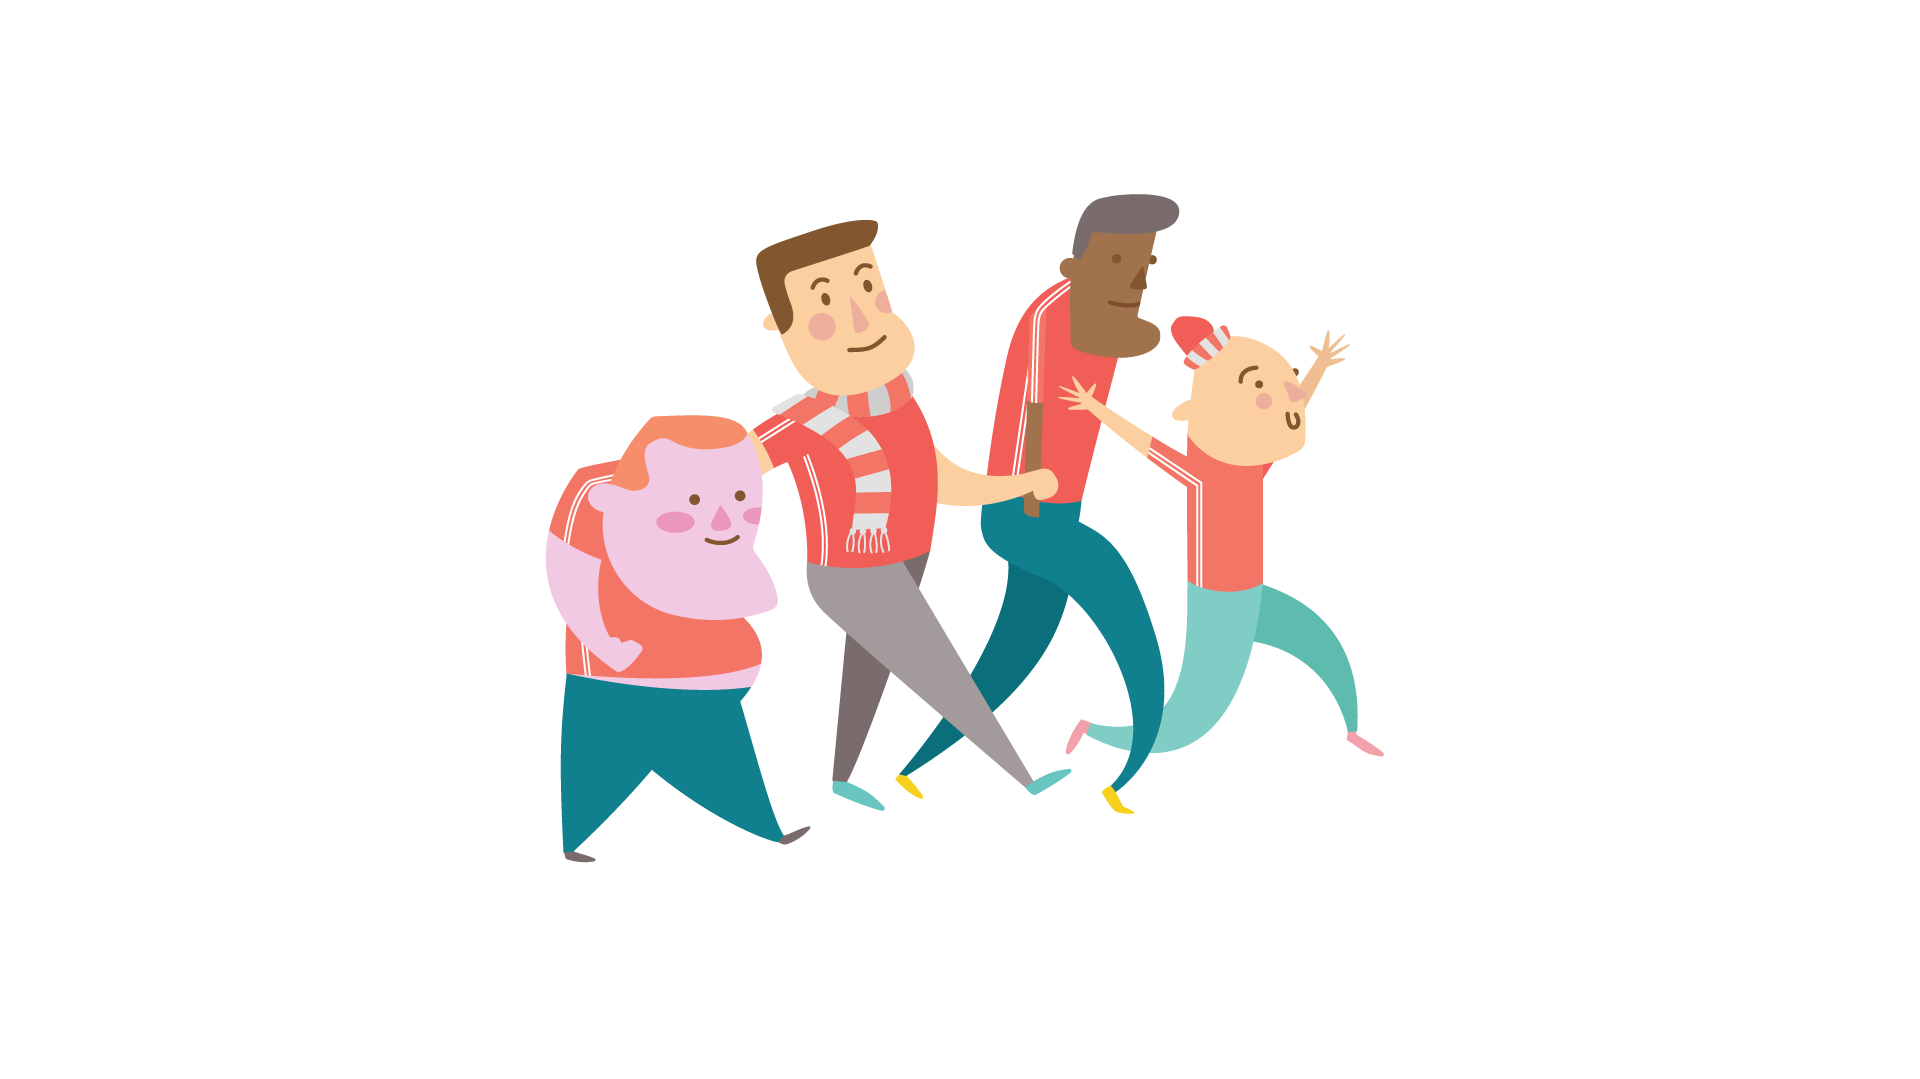 Happy_Football_Players_v02.png